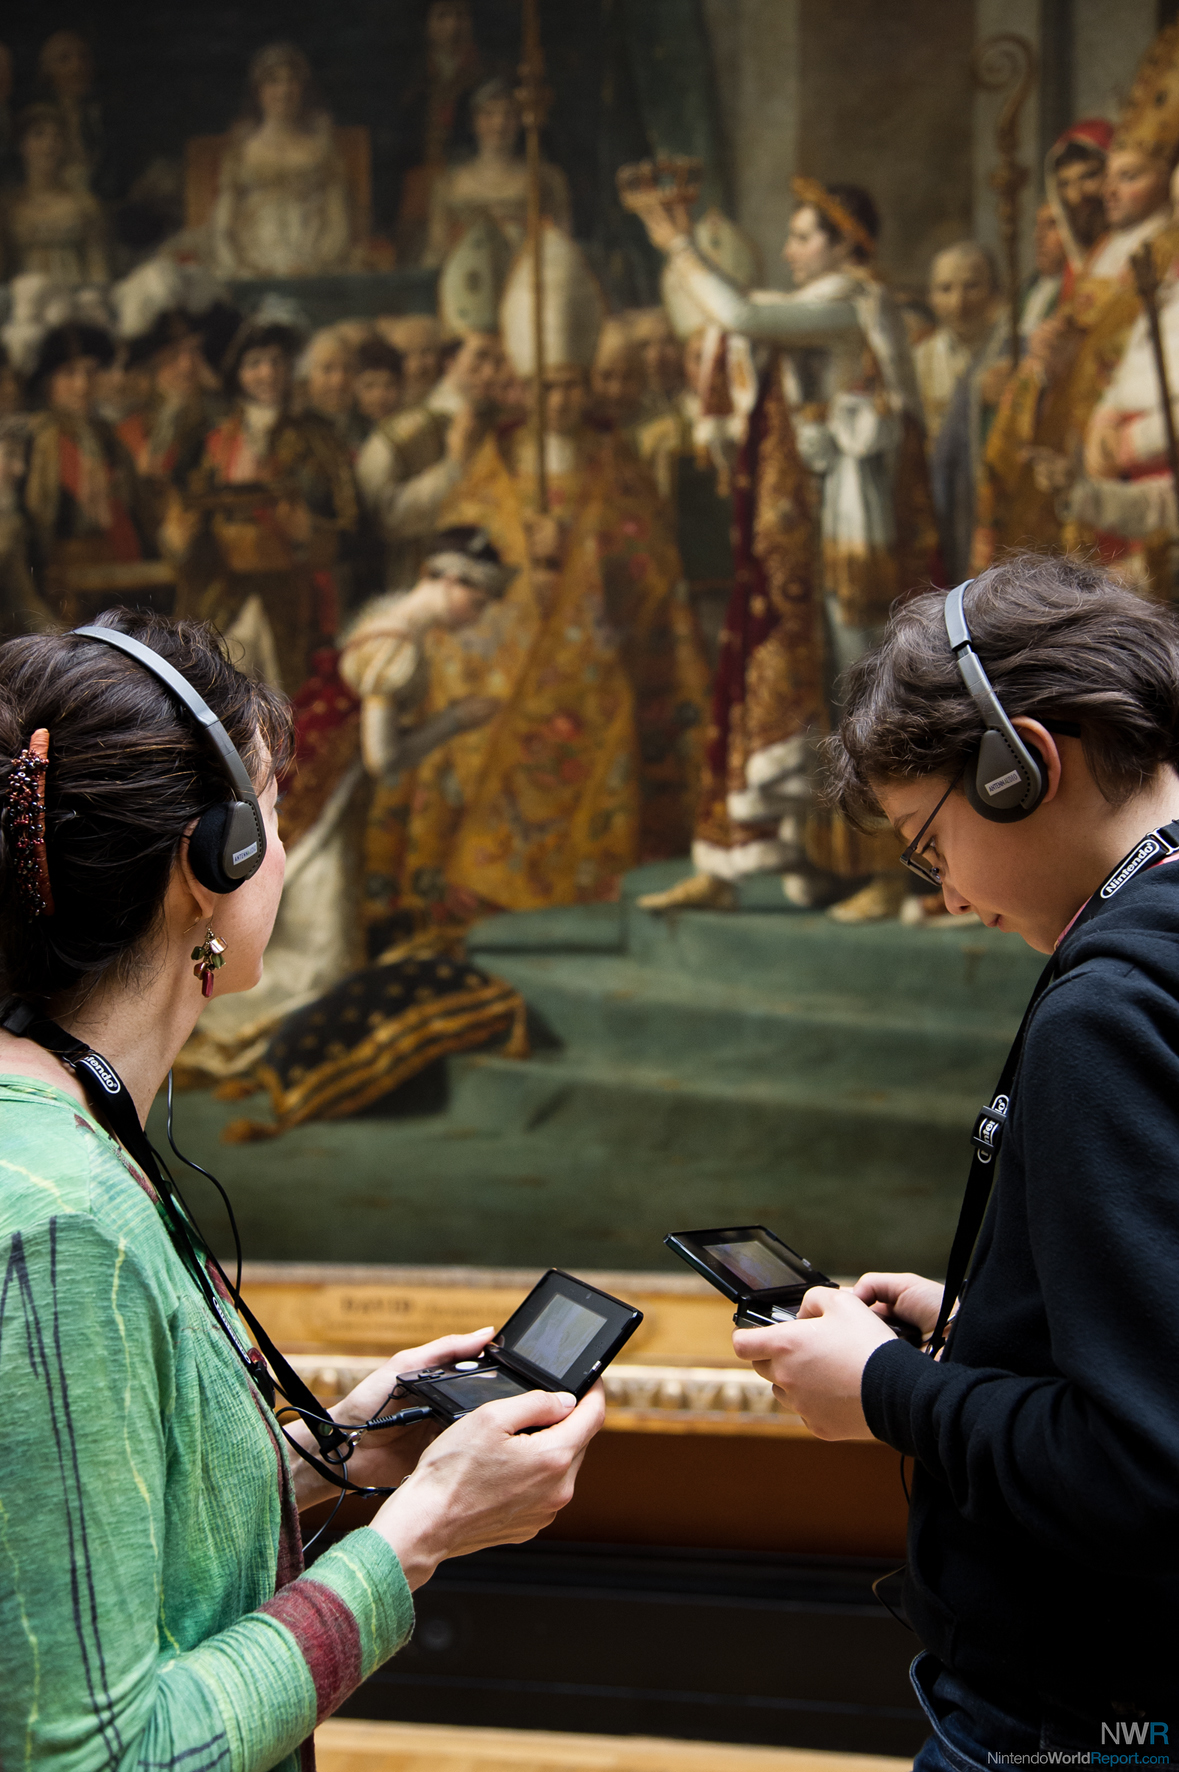 Nintendo 3DS Audio Guides Available At Louvre Museum